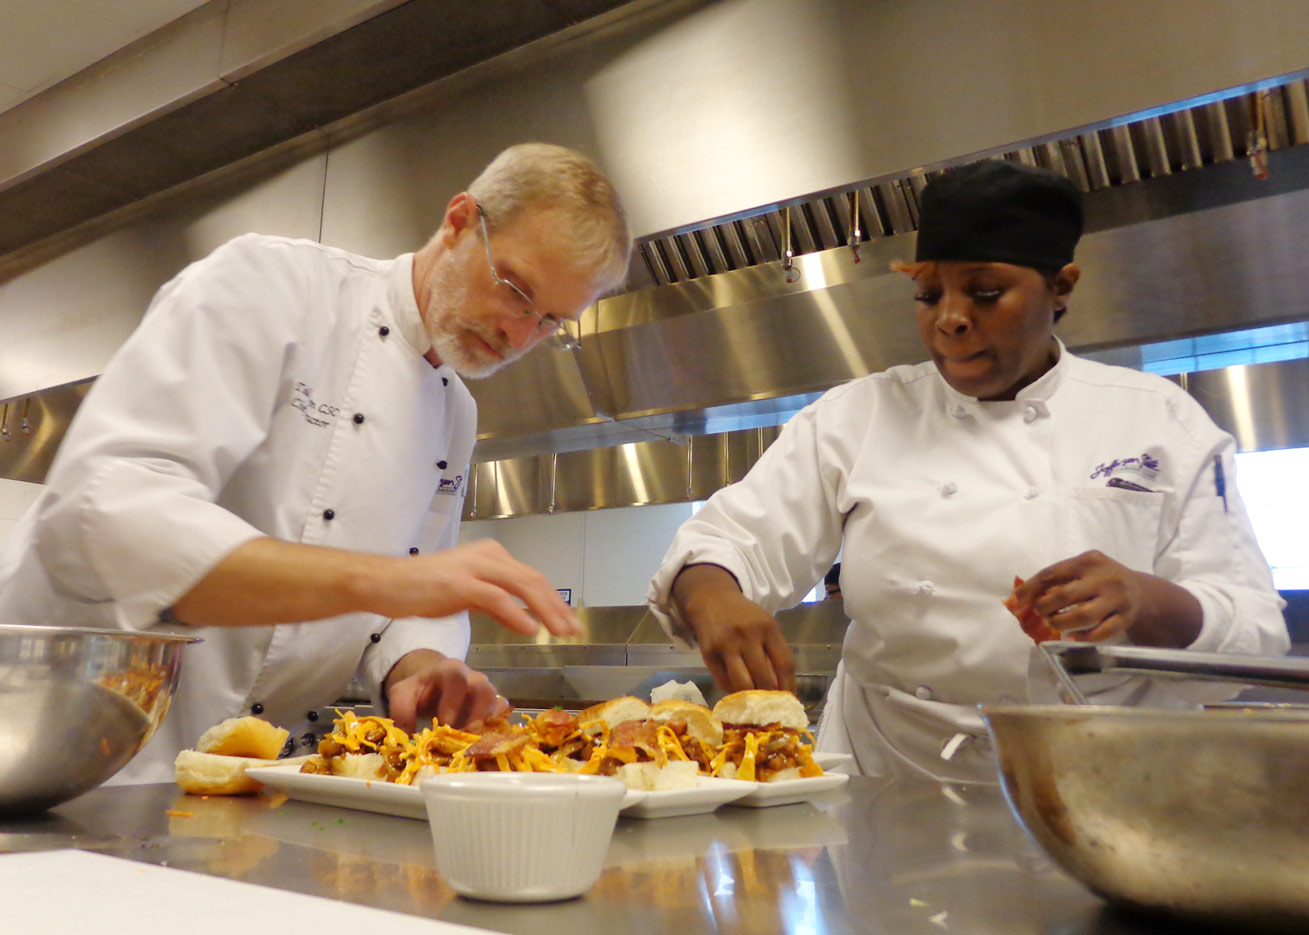 Jeff State Culinary Chefs cooking